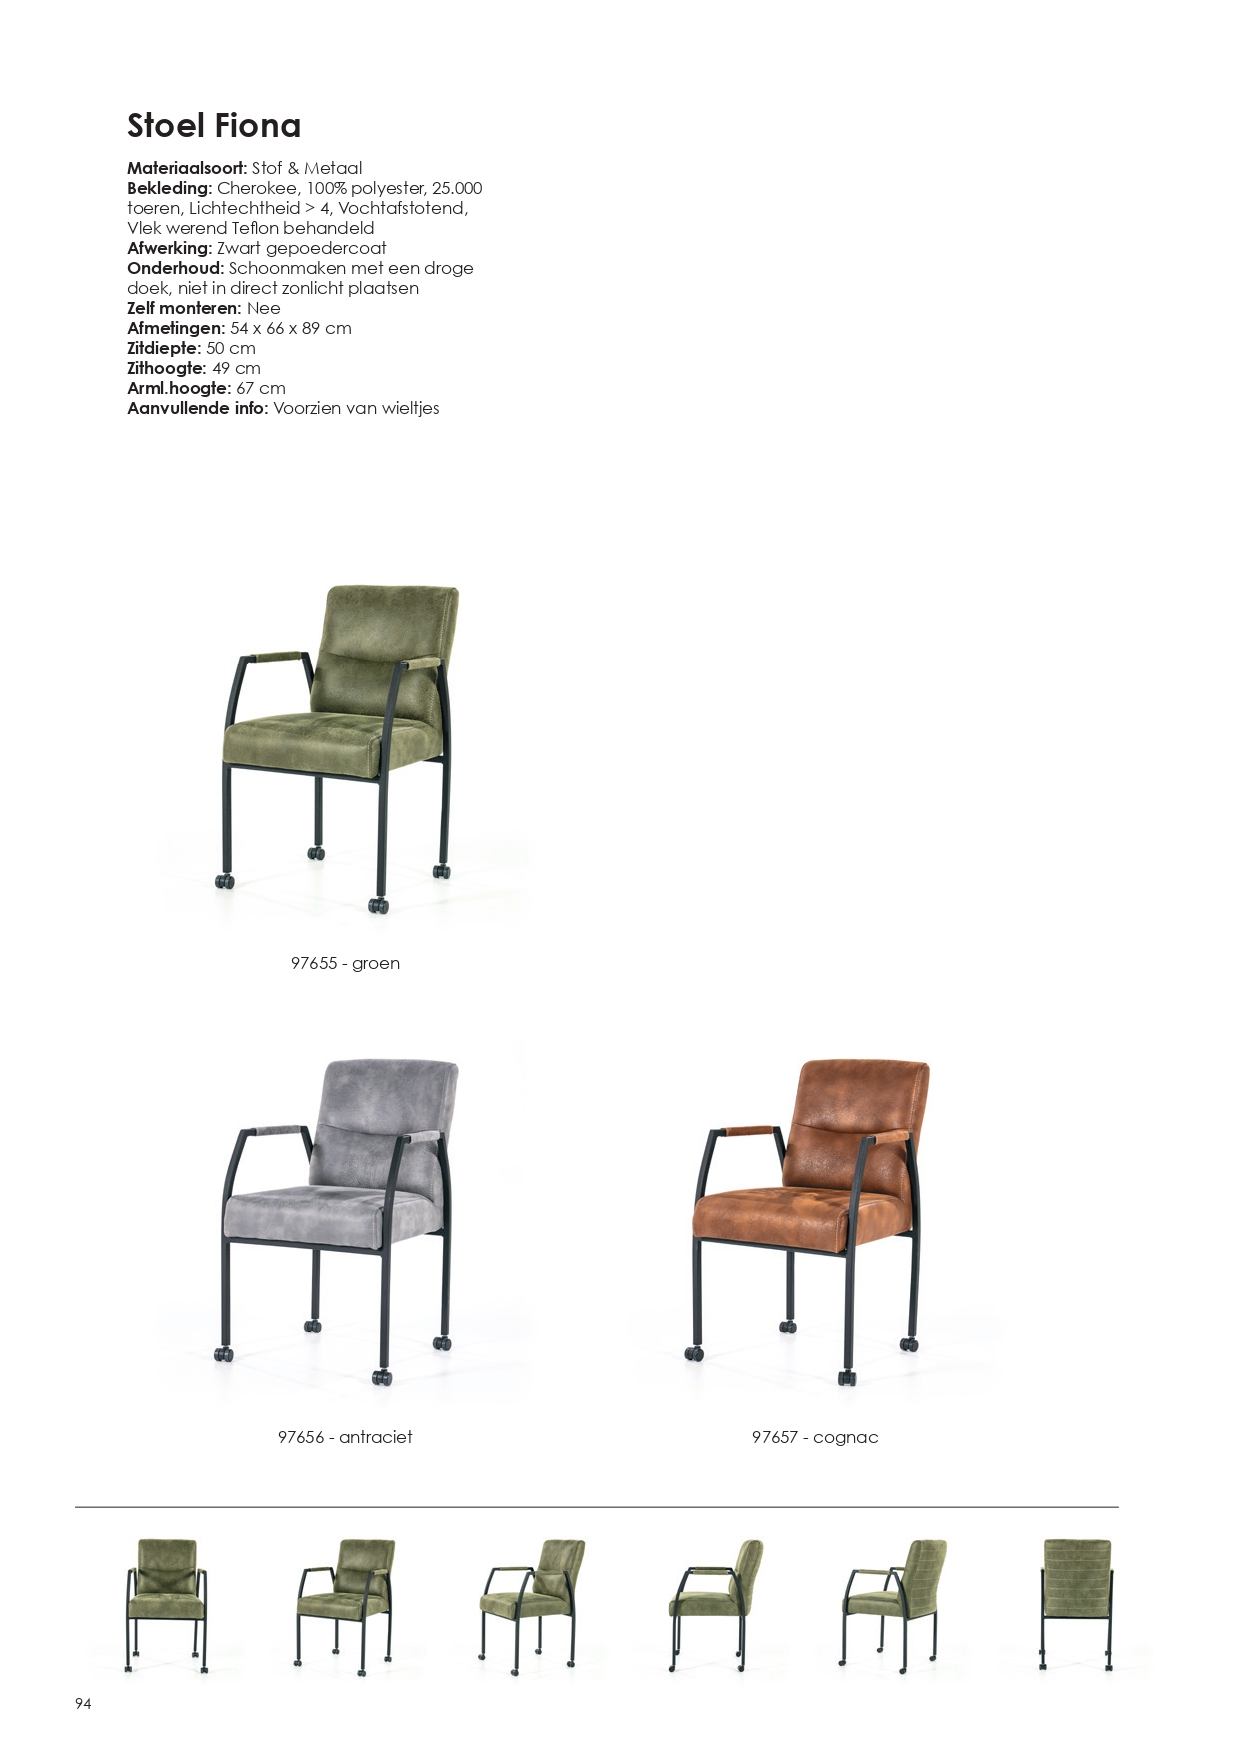 Catalogus SS21 NL_page-0094